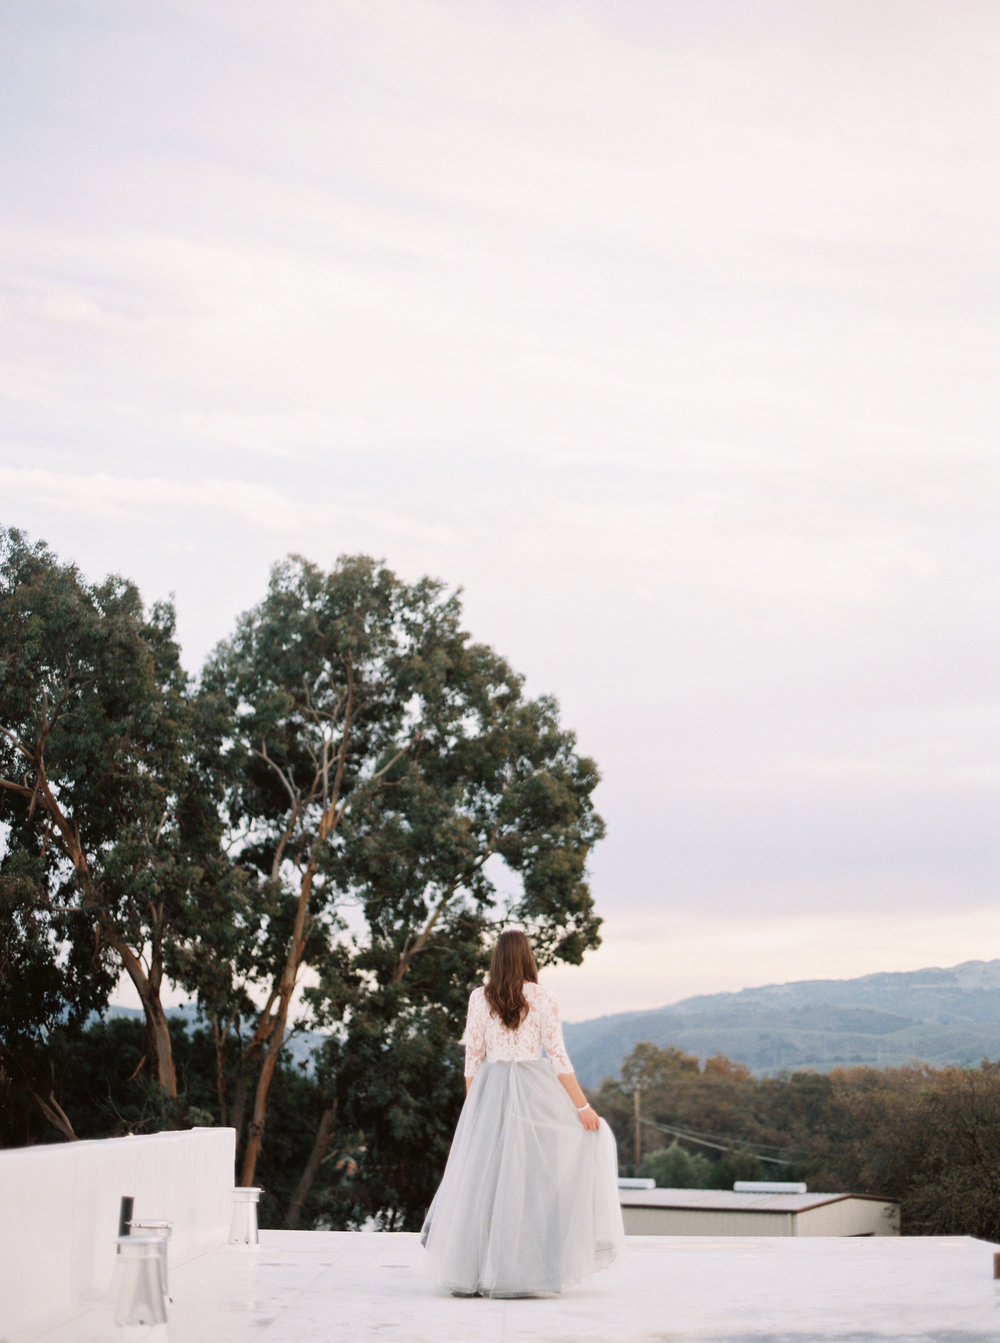 boho-inspired-wedding-at-casa-bella-in-sunol-california-127.jpg